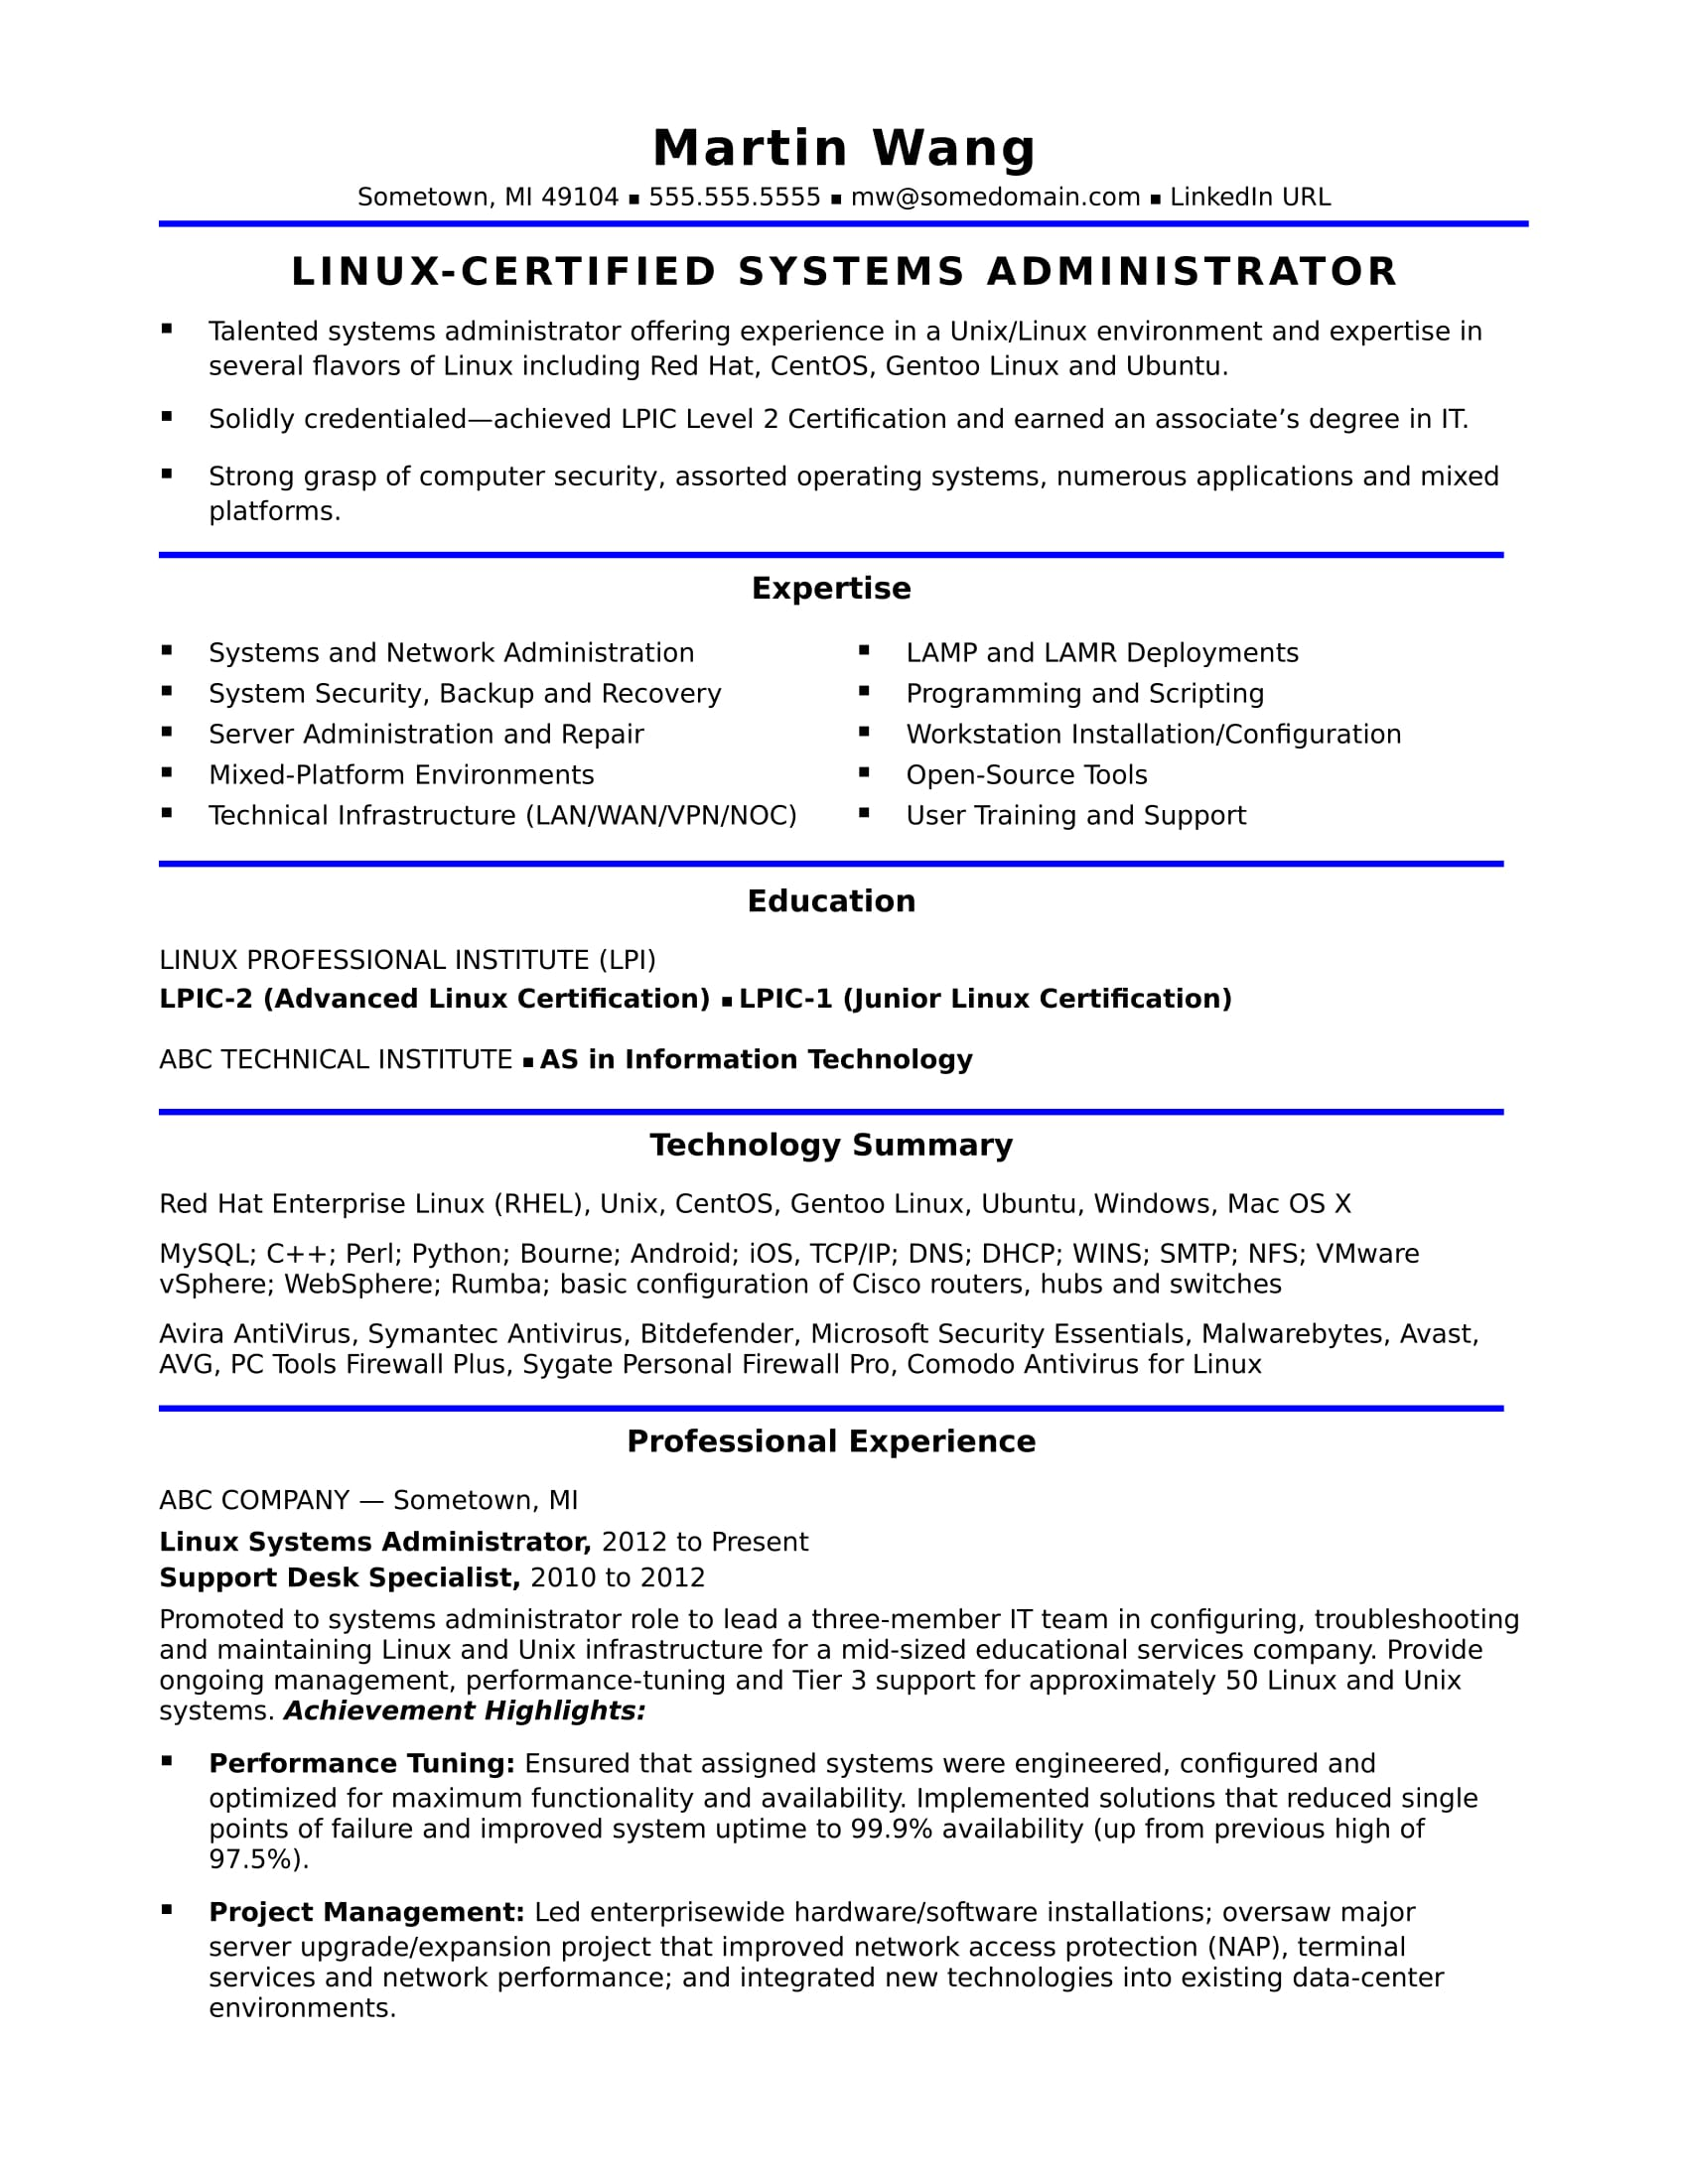 sample resume for midlevel systems administrator monster firewall experience policy Resume Firewall Experience Resume